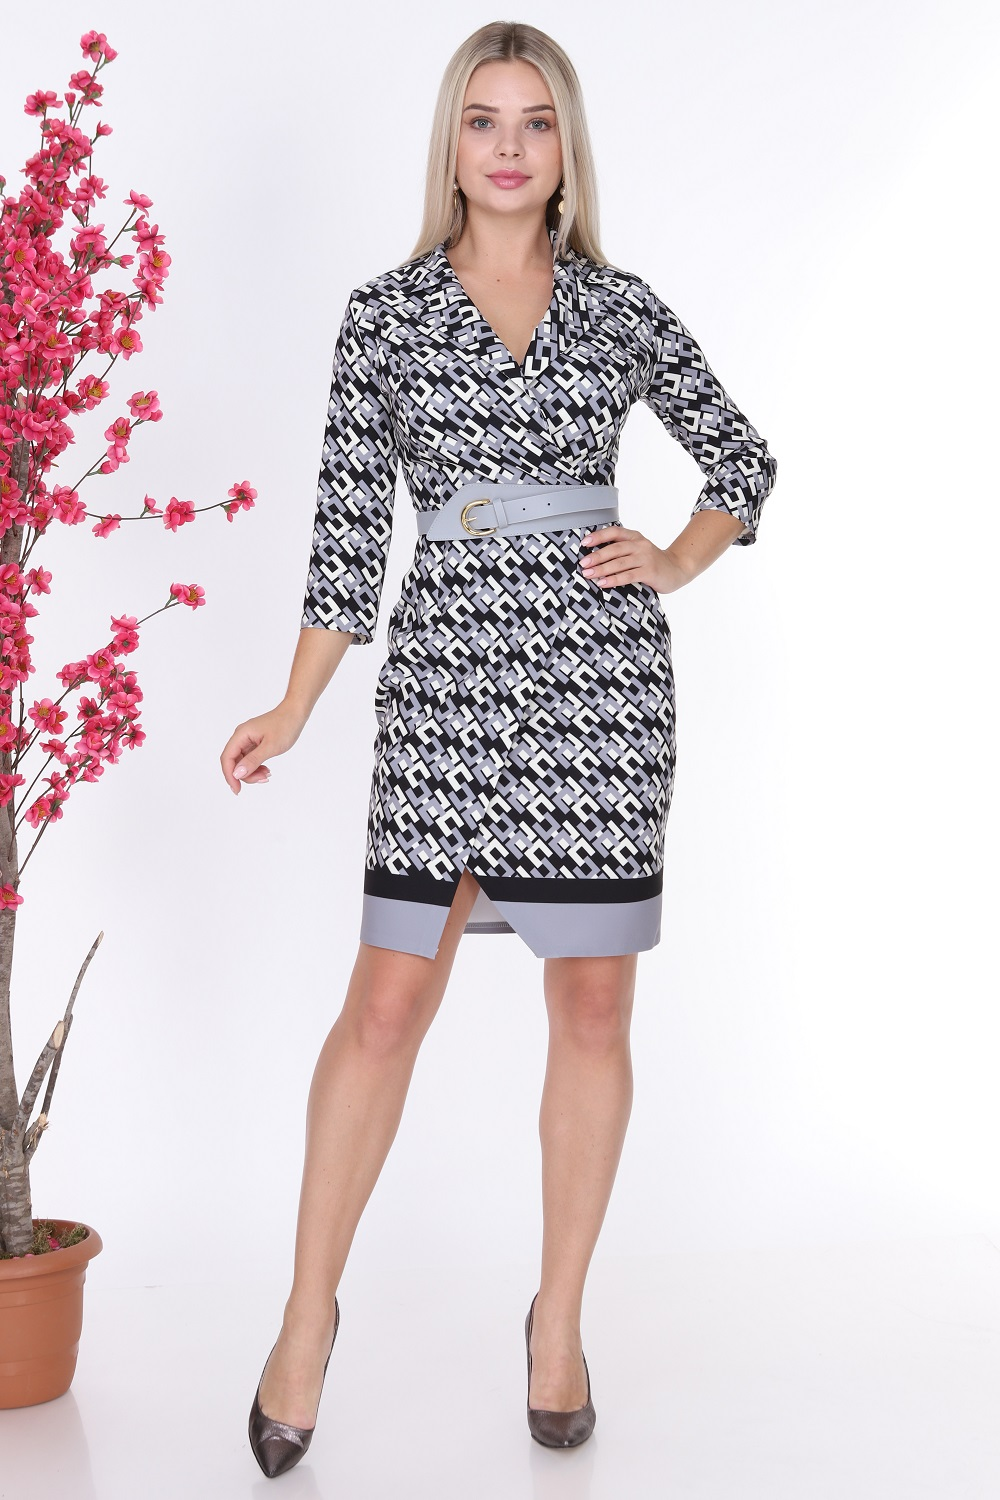 Patterned Collar Gray Color Dress